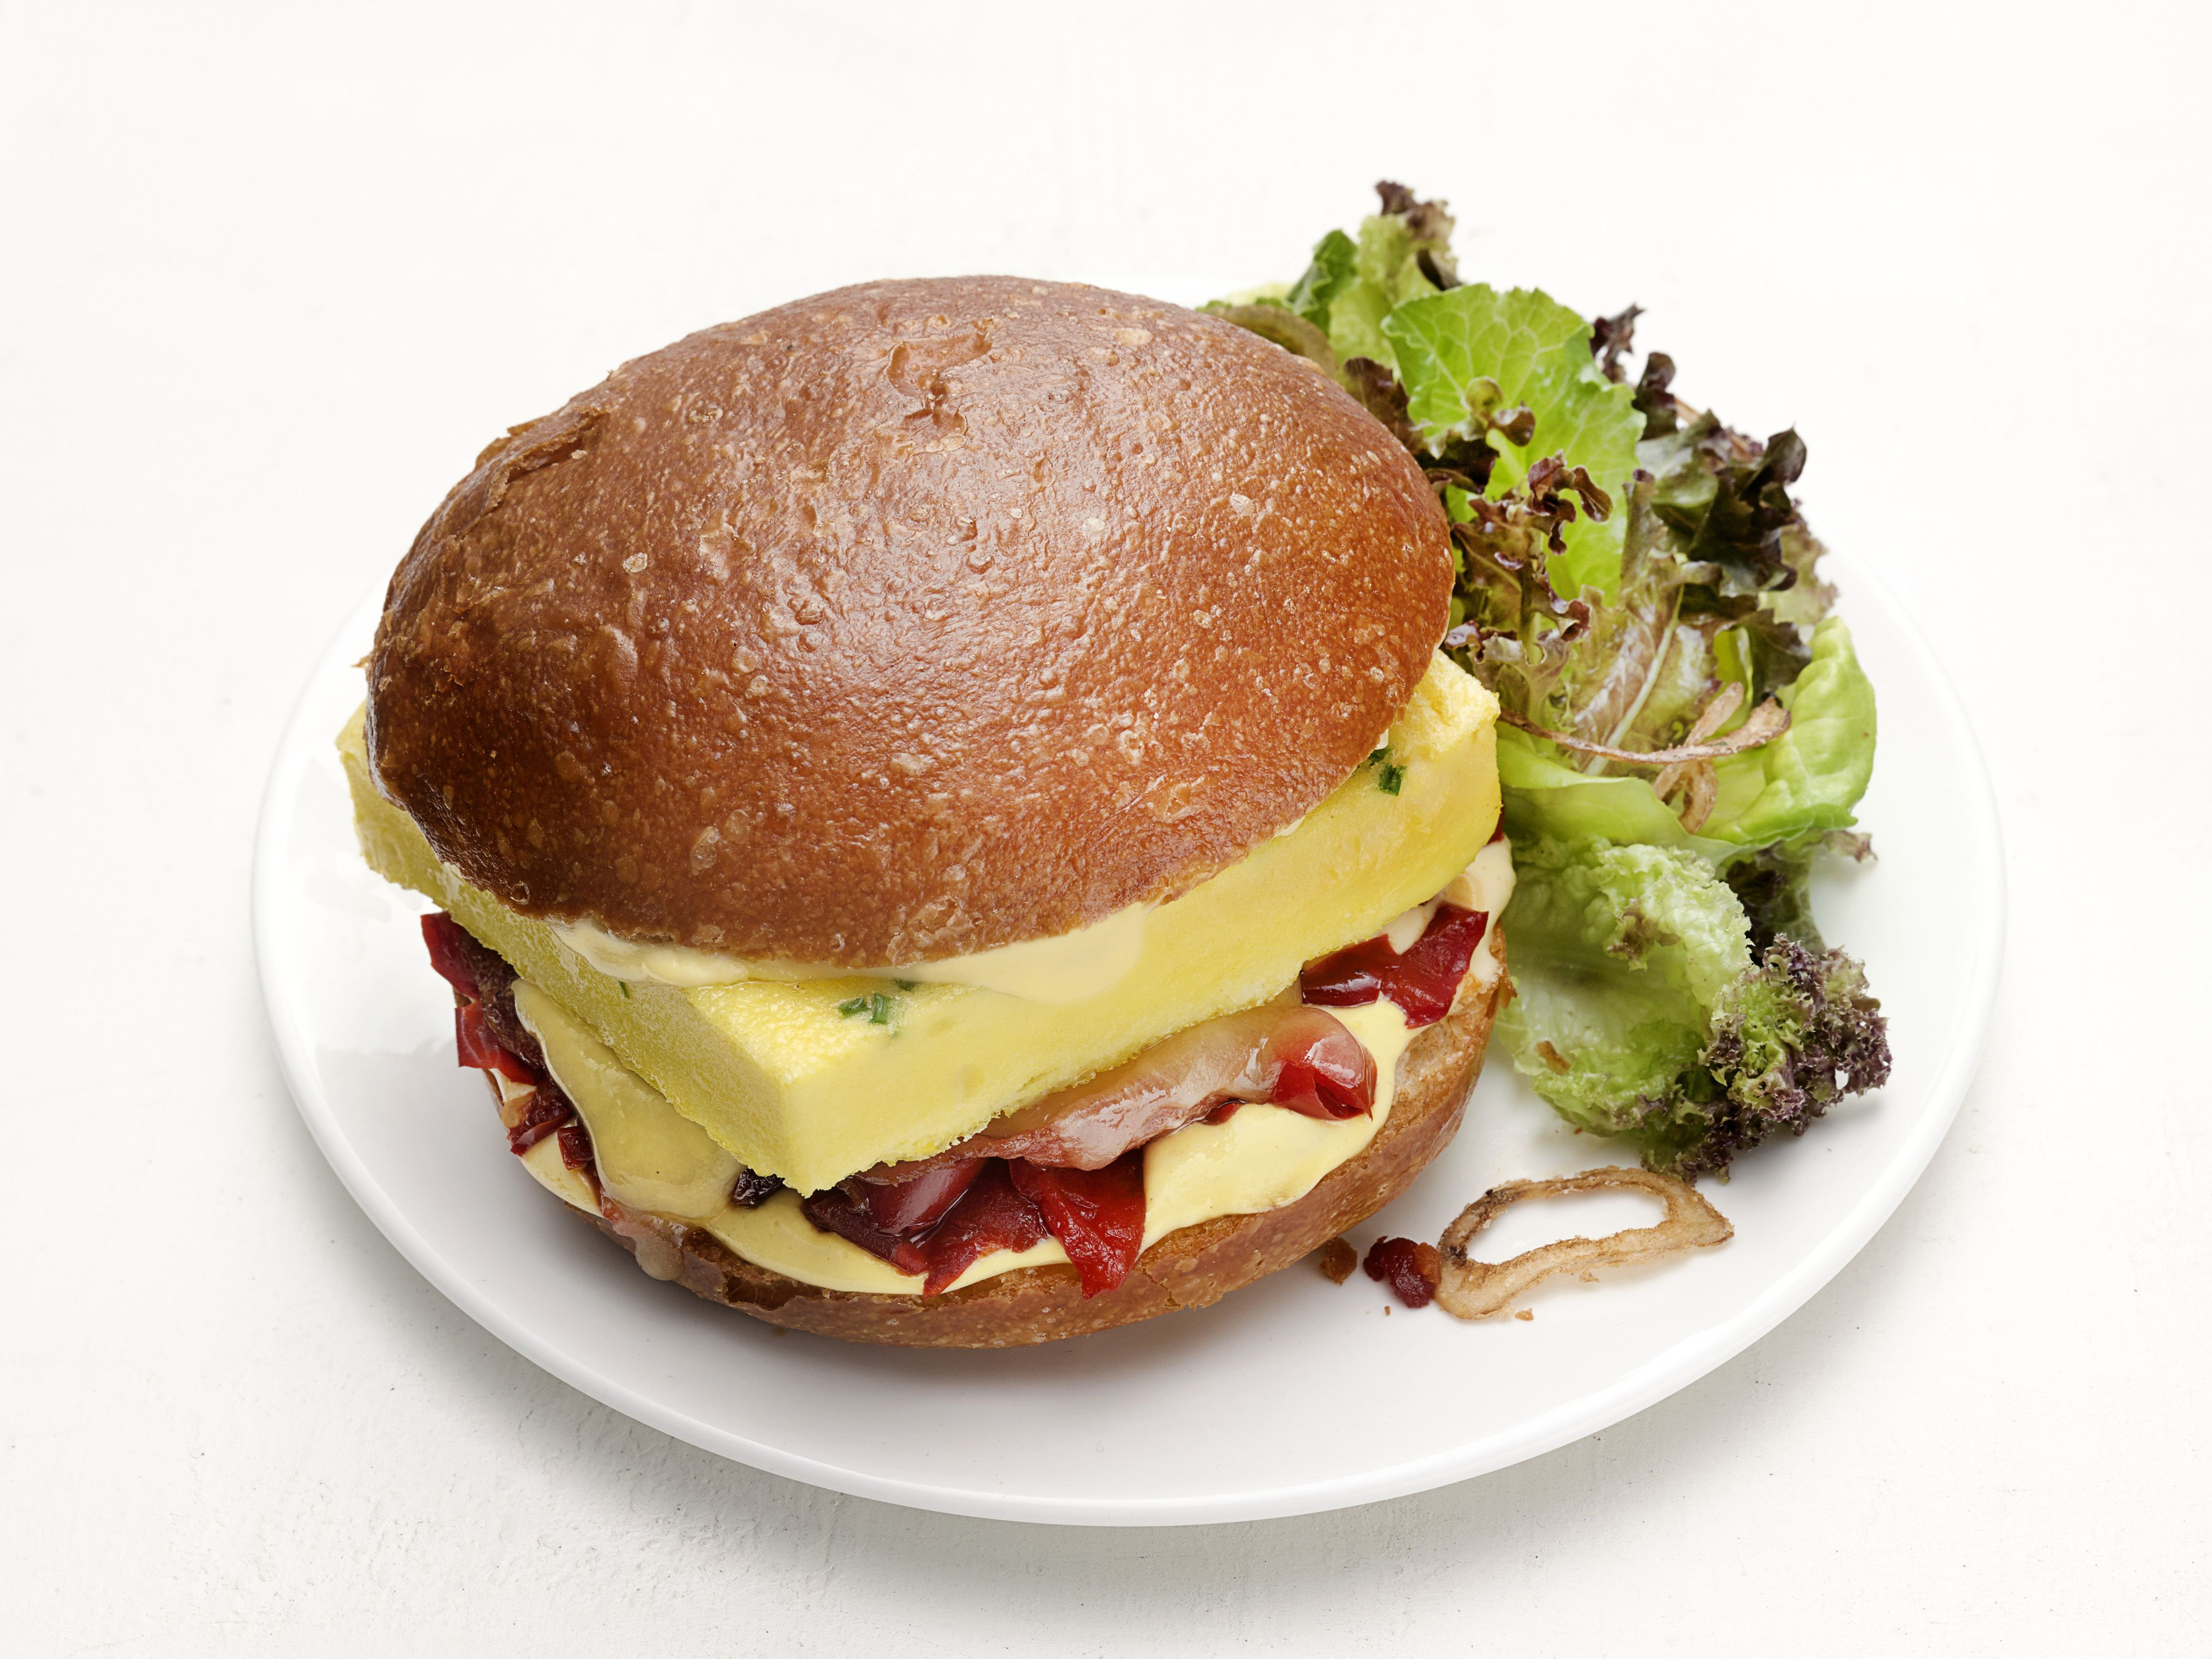 Baked egg and canadian bacon sandwiches recipe bacon sandwich baked egg and canadian bacon sandwiches forumfinder Image collections